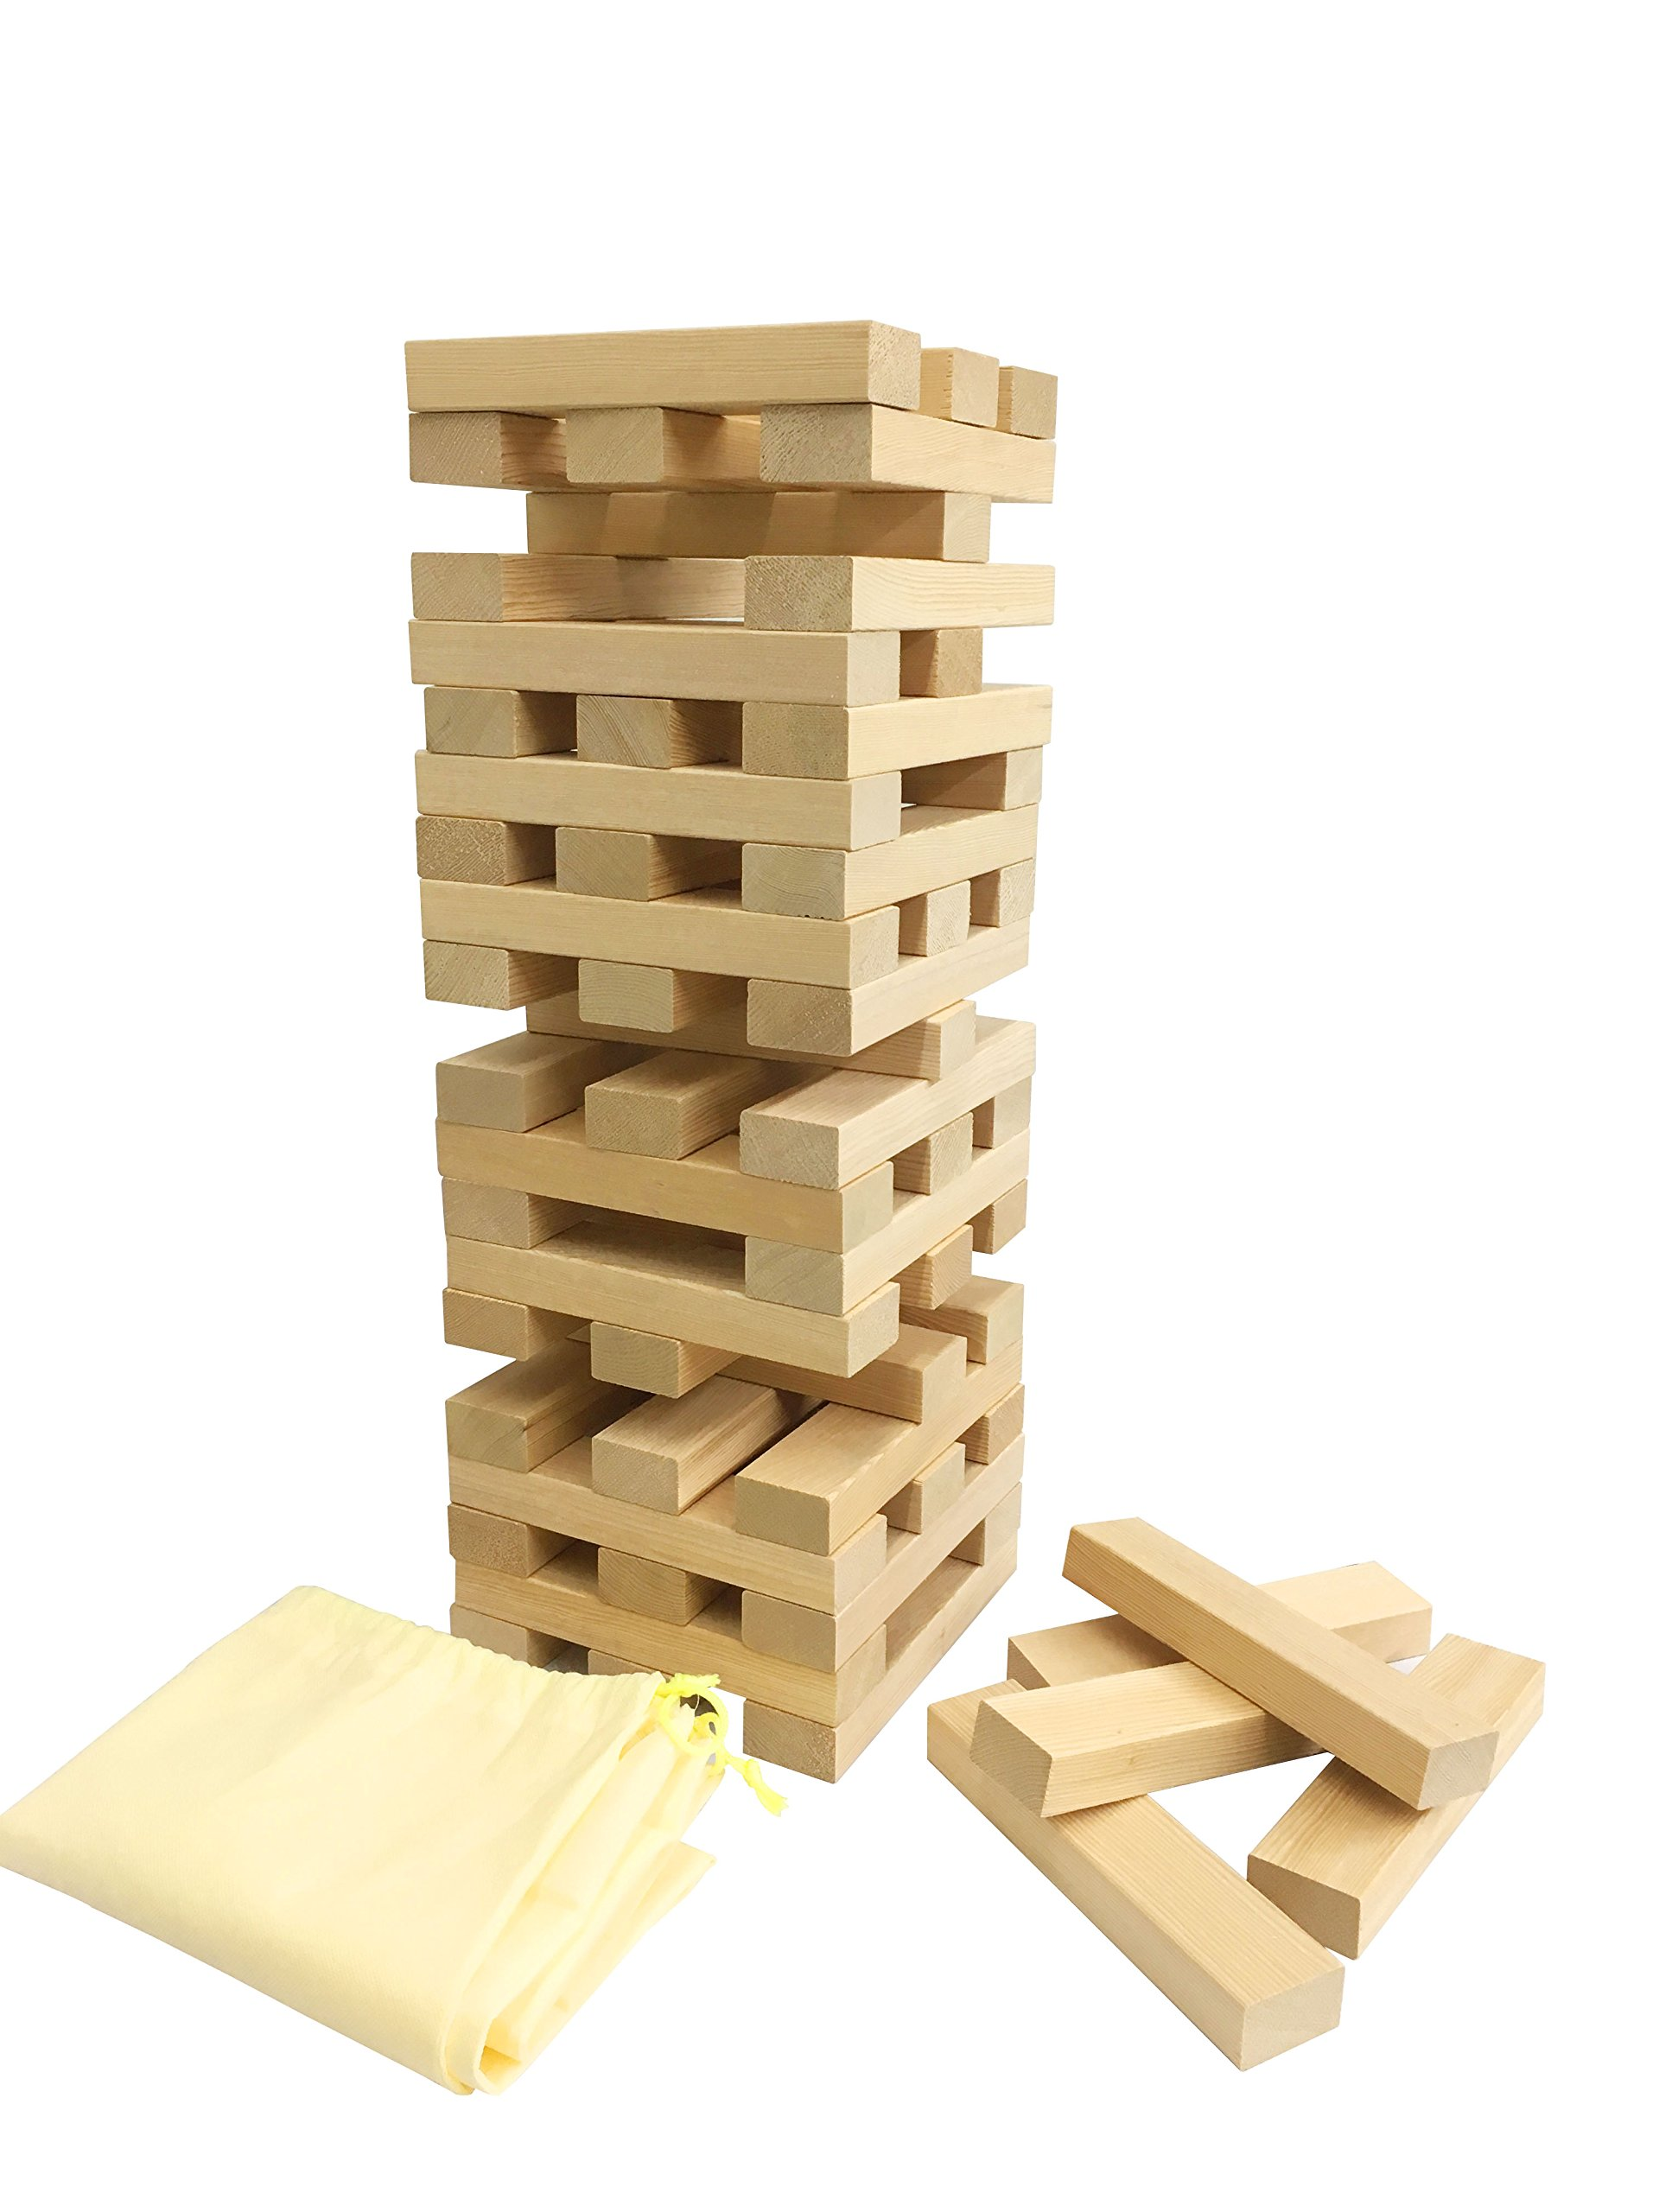 IFUN HIGH Wooden giant tumble tower 60PCS Hands-on puzzle game